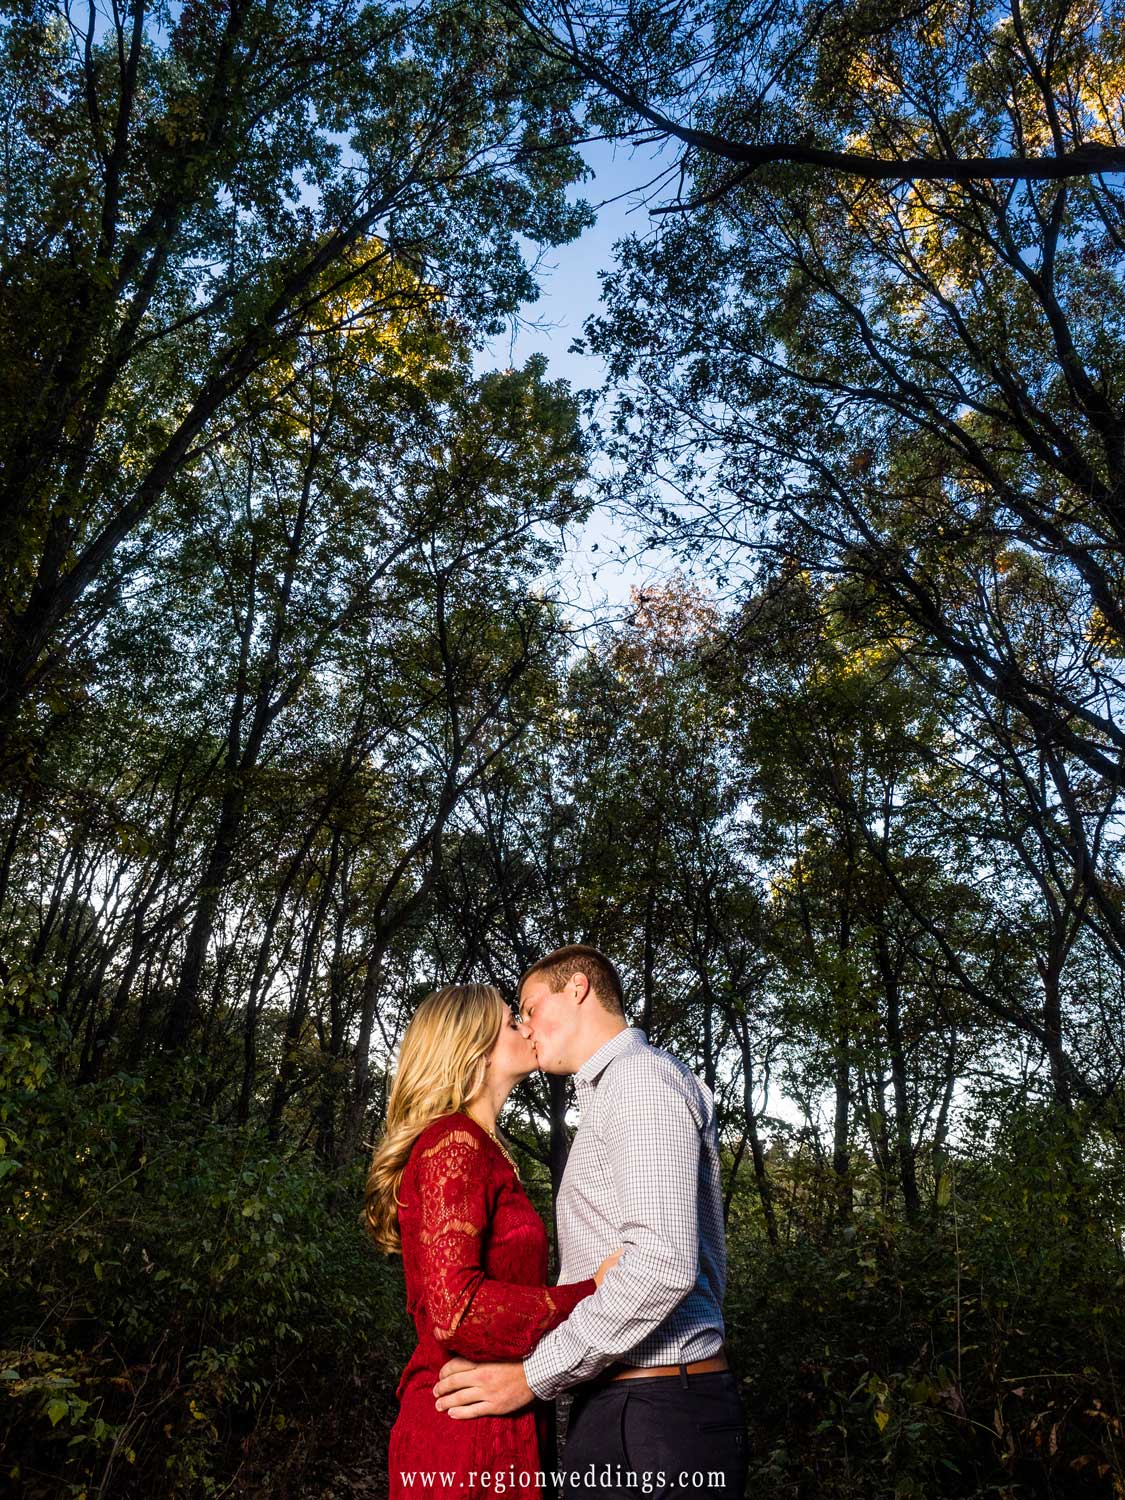 A kiss underneath the the tall trees of Taltree Arboretum.